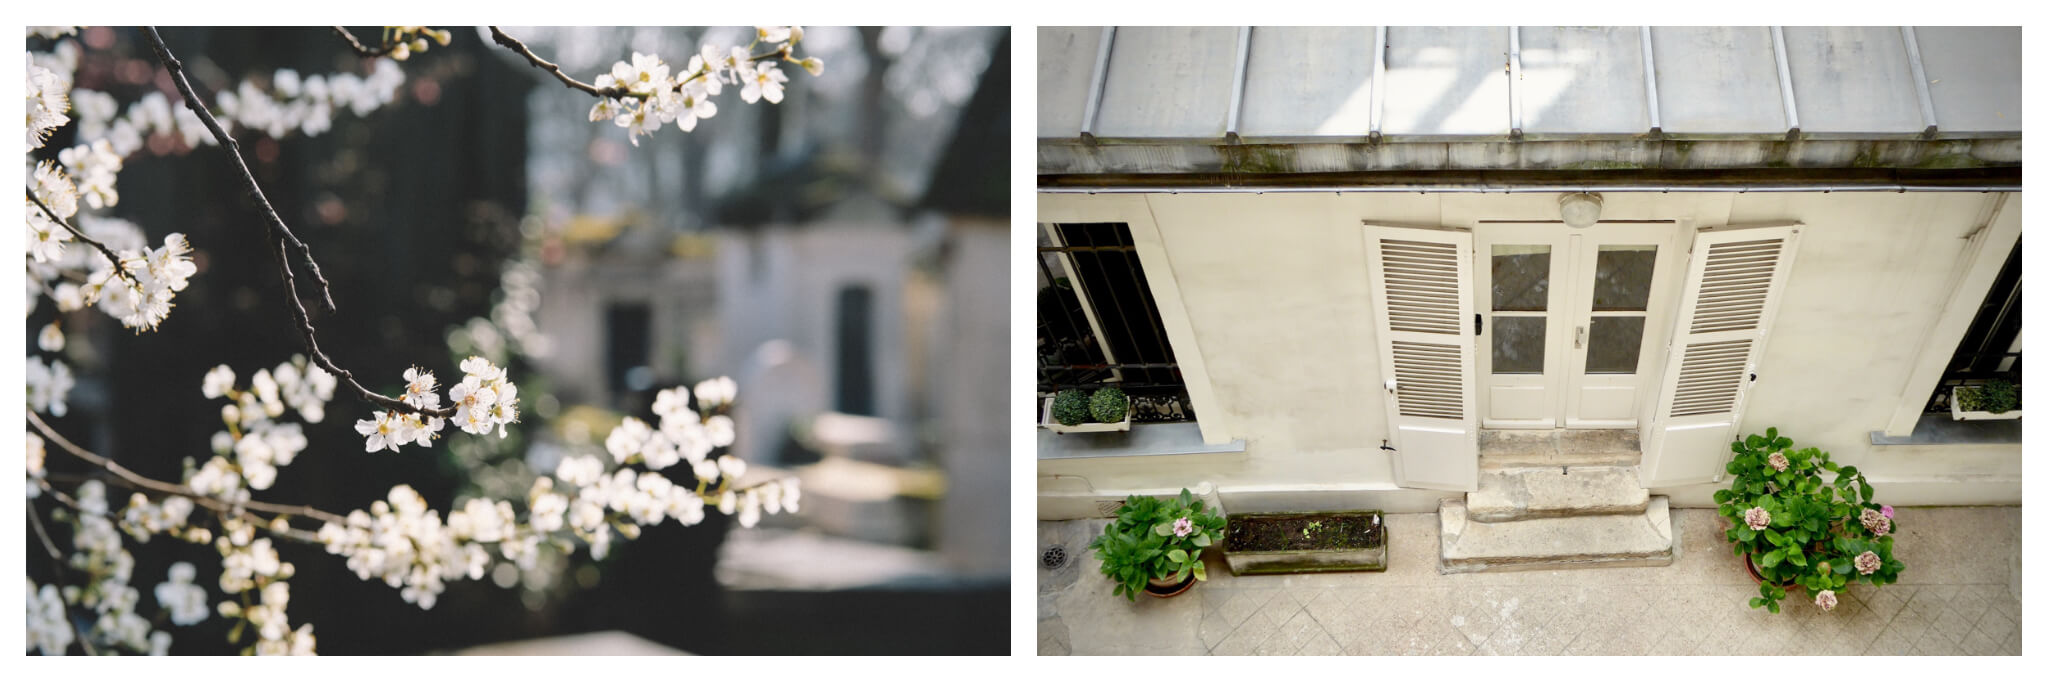 Left, flowers blooming all over Paris. Right, we're all staying indoors in Paris during the pandemic.